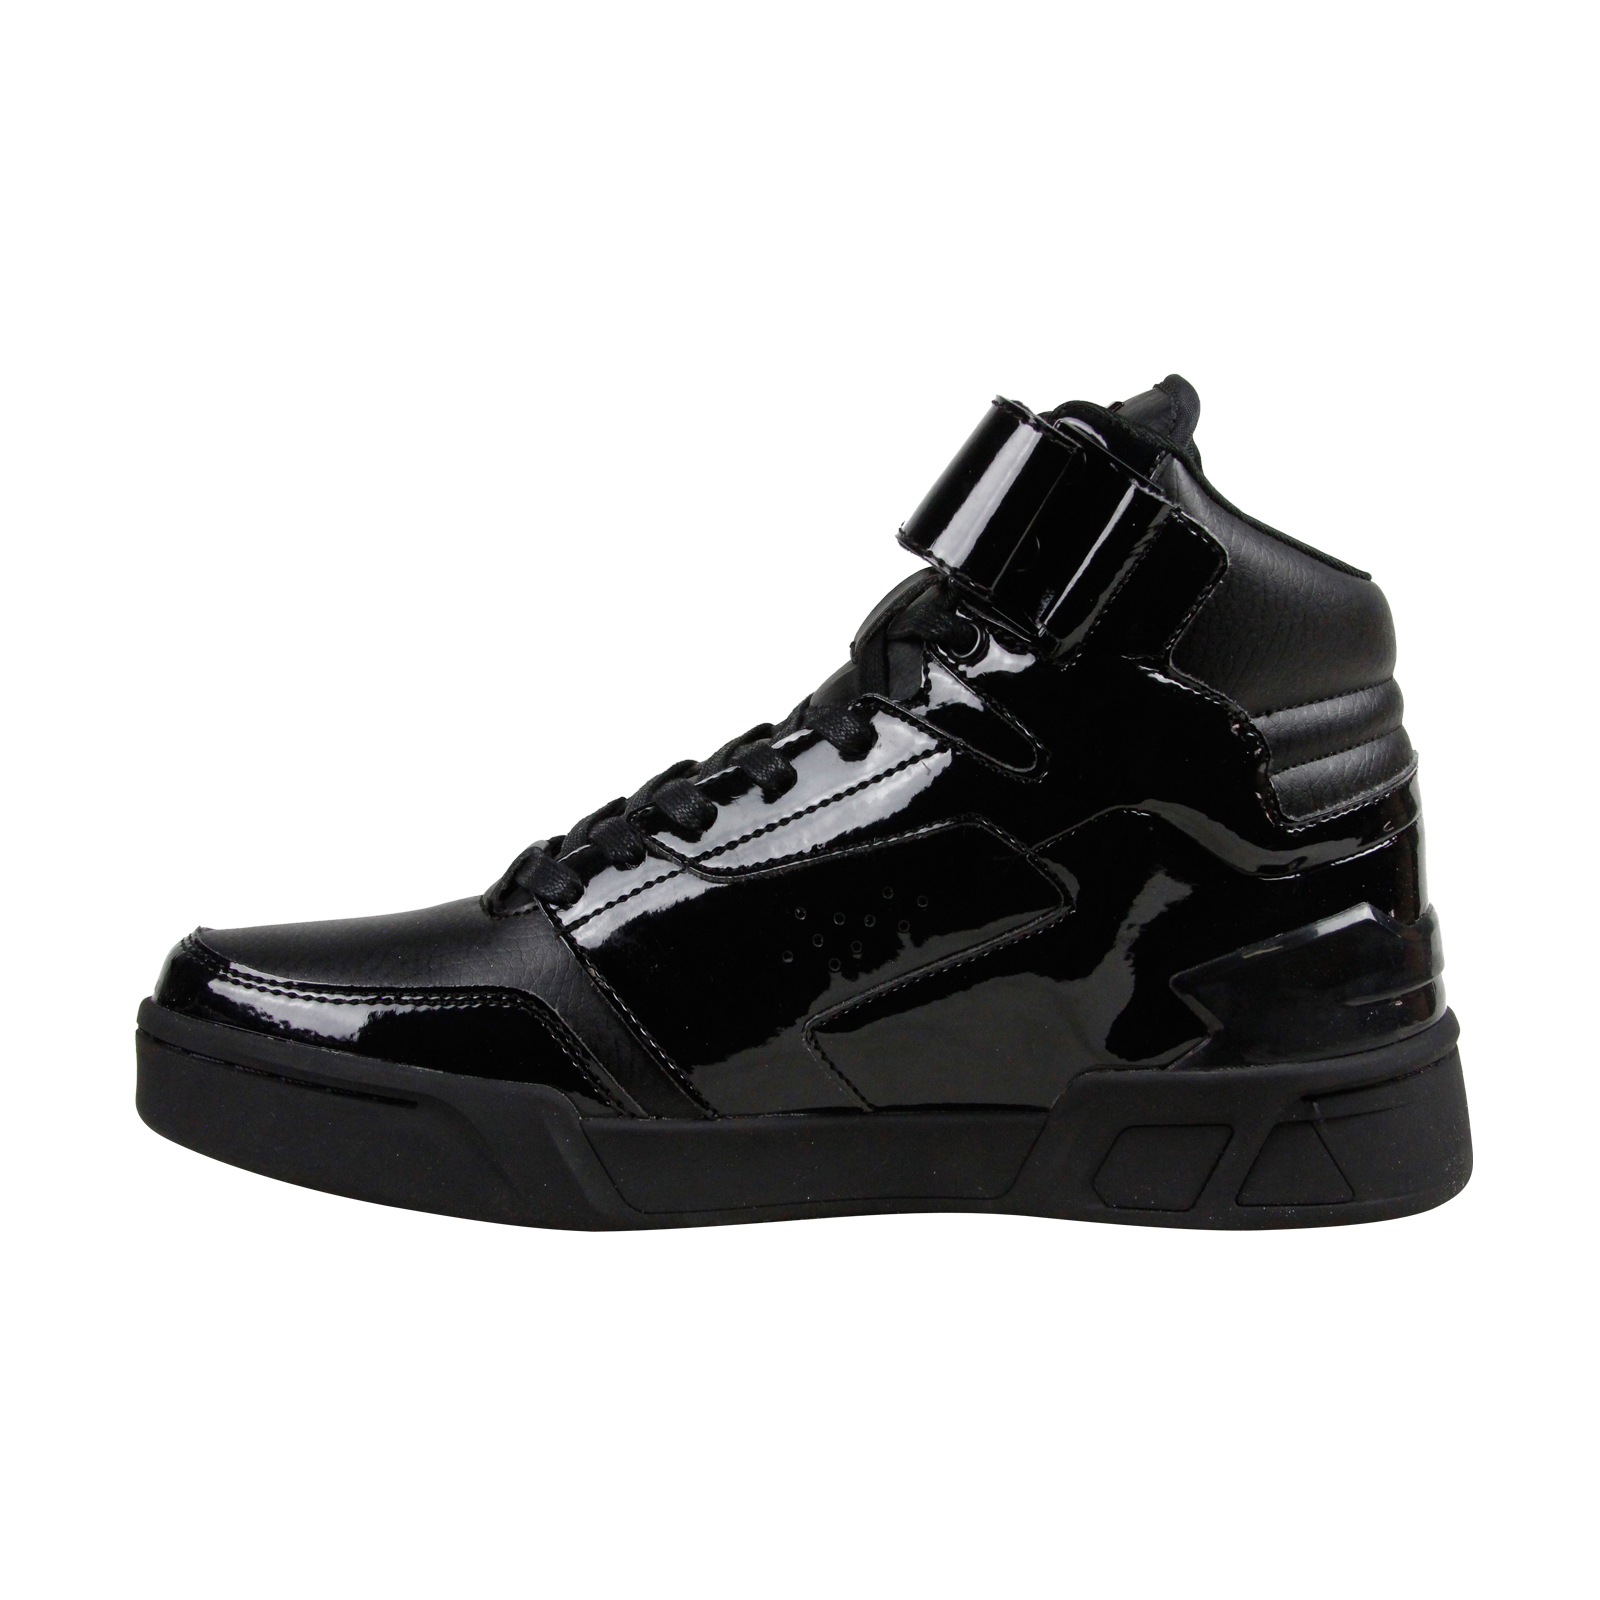 Mens Patent Leather Athletic Shoes